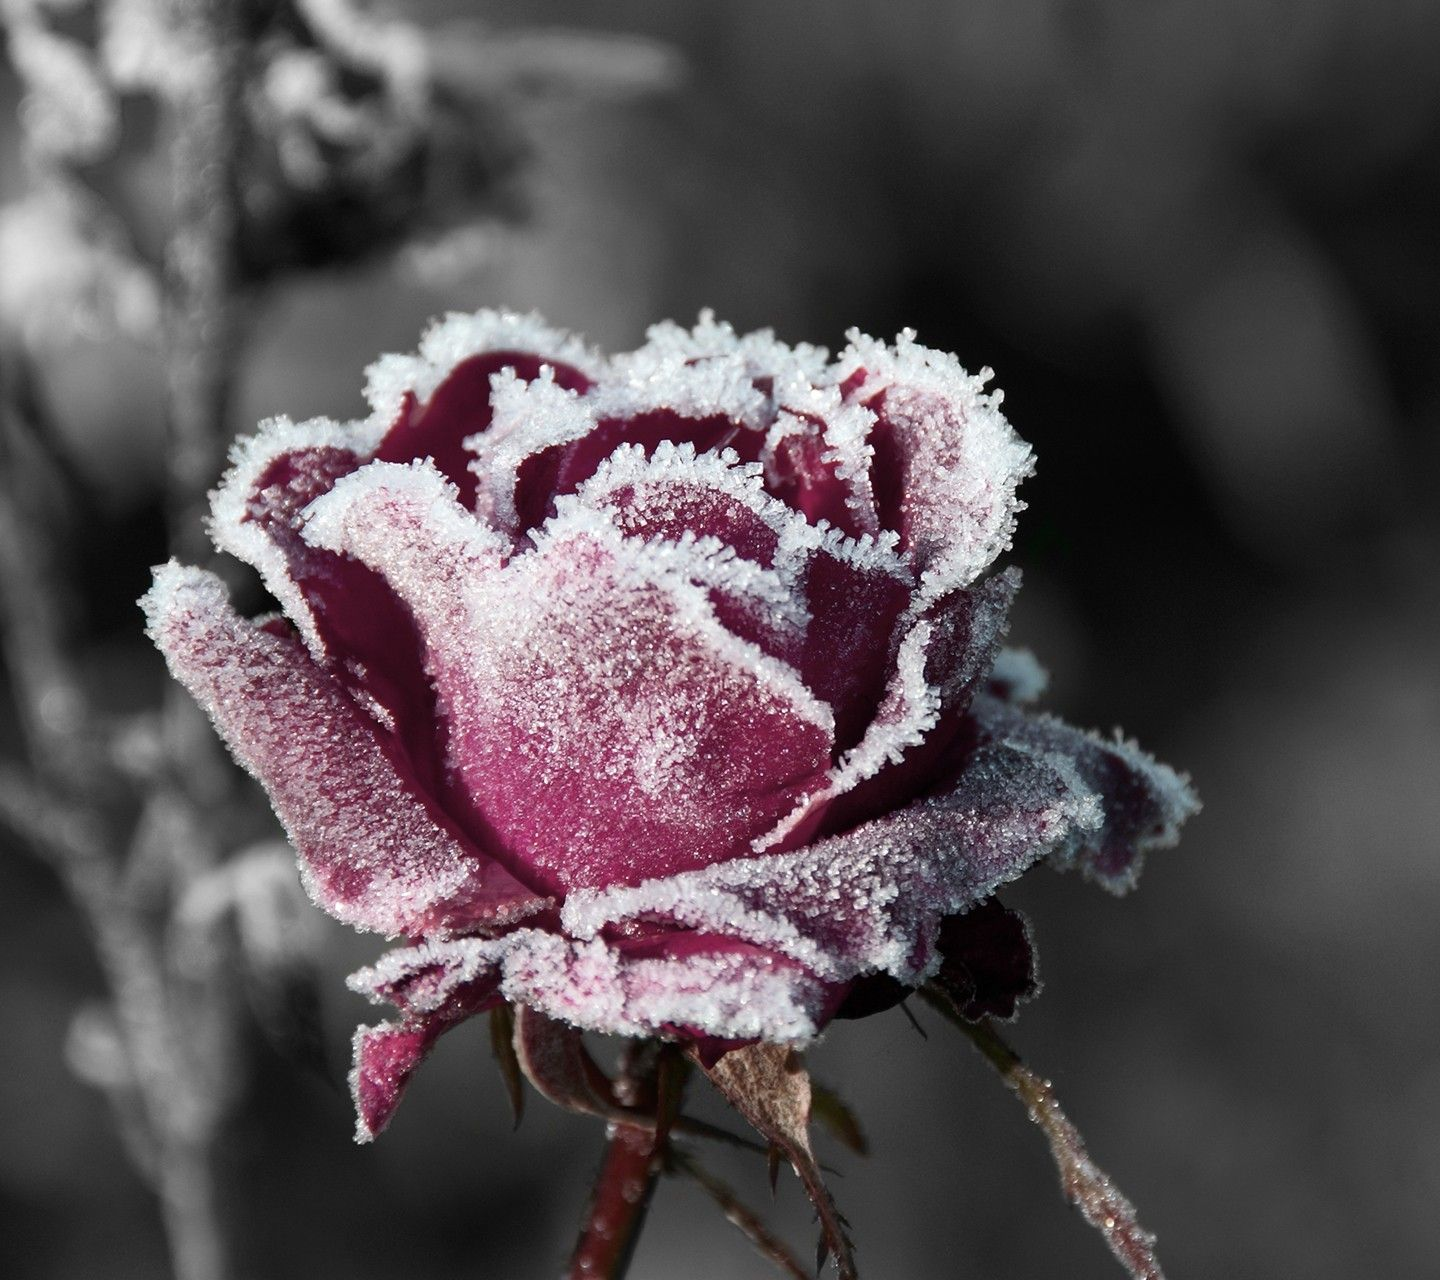 1440x1280 Flowers: Art Red Icy Rose Nature Flower Snow Wallpapers For Desktop ...